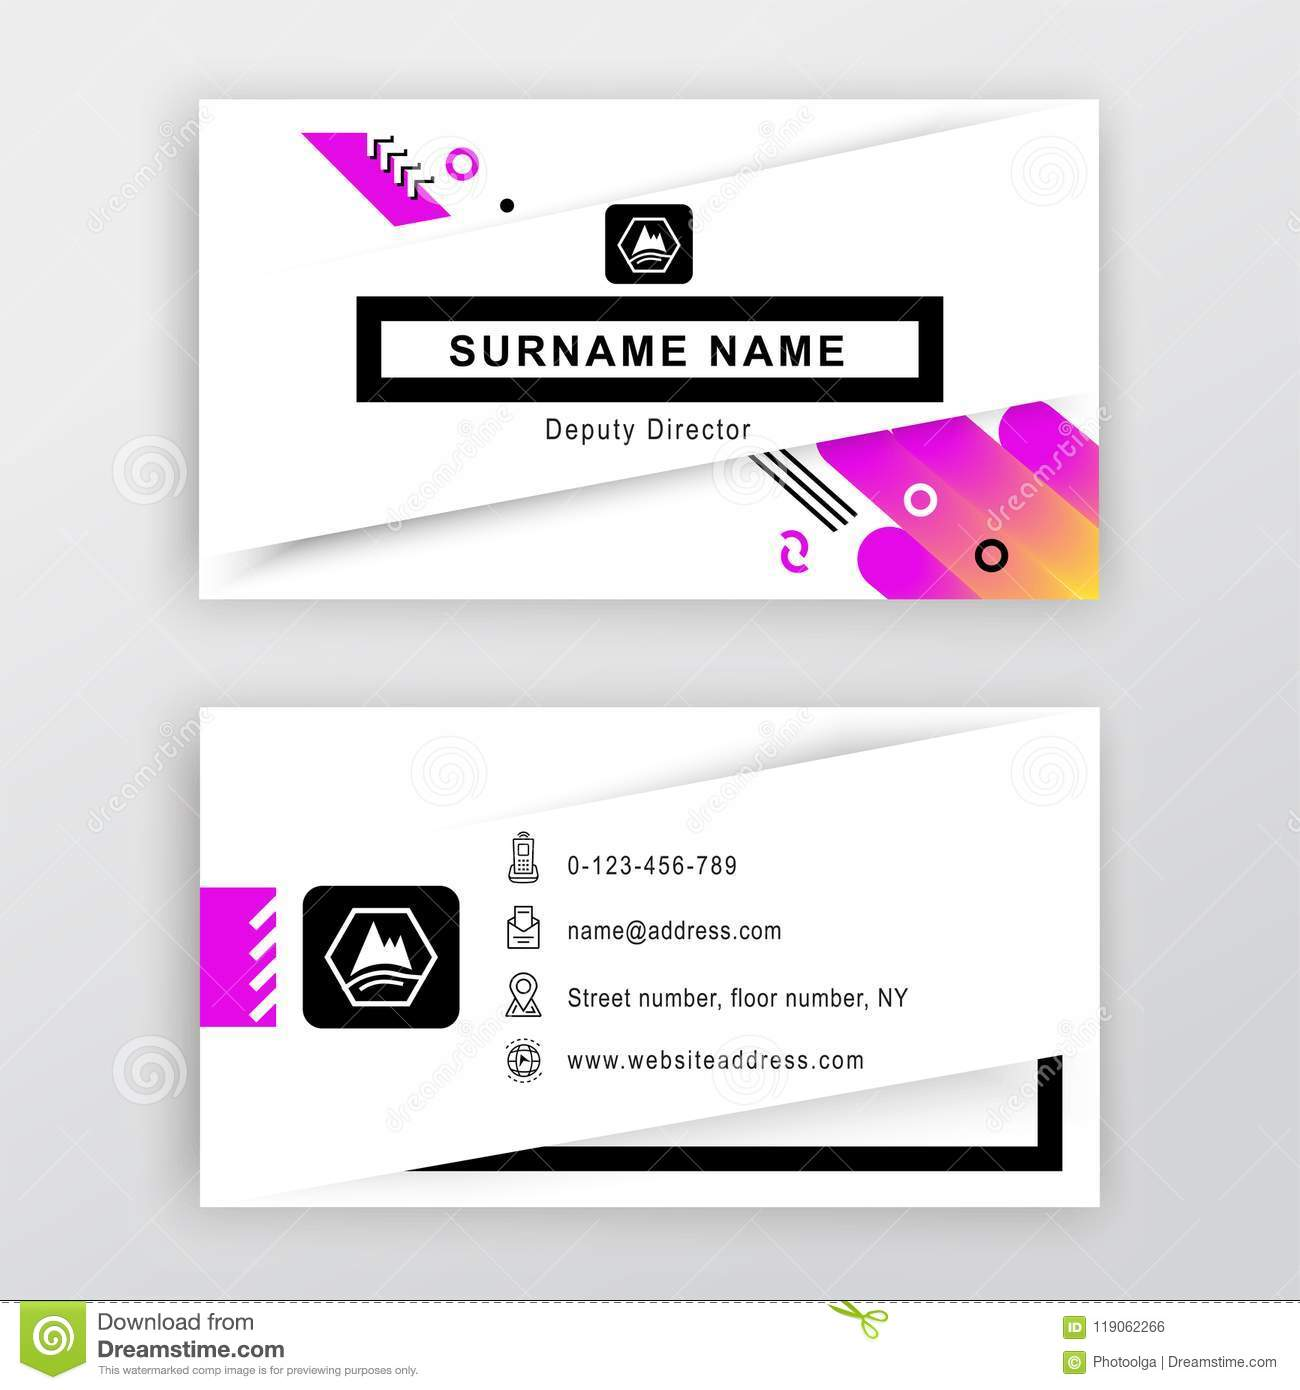 Business card white background with logo abstract gradients shapes download business card white background with logo abstract gradients shapes and thin icons colourmoves